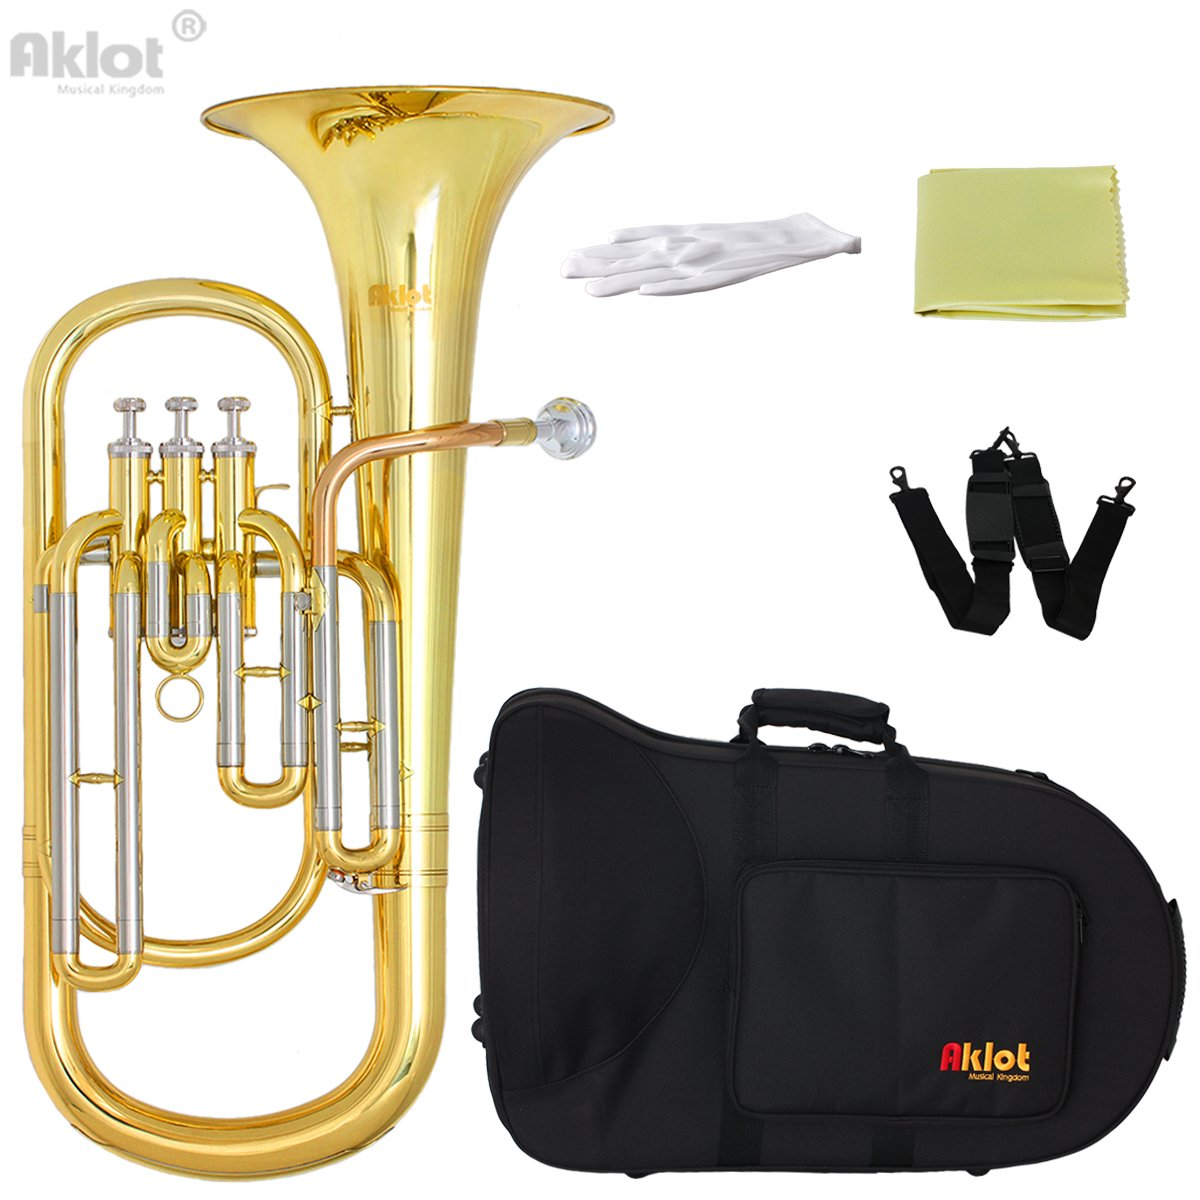 Aklot Professional Bb Baritone Horn Cupronickel Tuning Pipe Gold Brass Leadpipe Silver Plated Mouthpiece Gold Lacquered Brass Body Stainless Steel Valves with Case